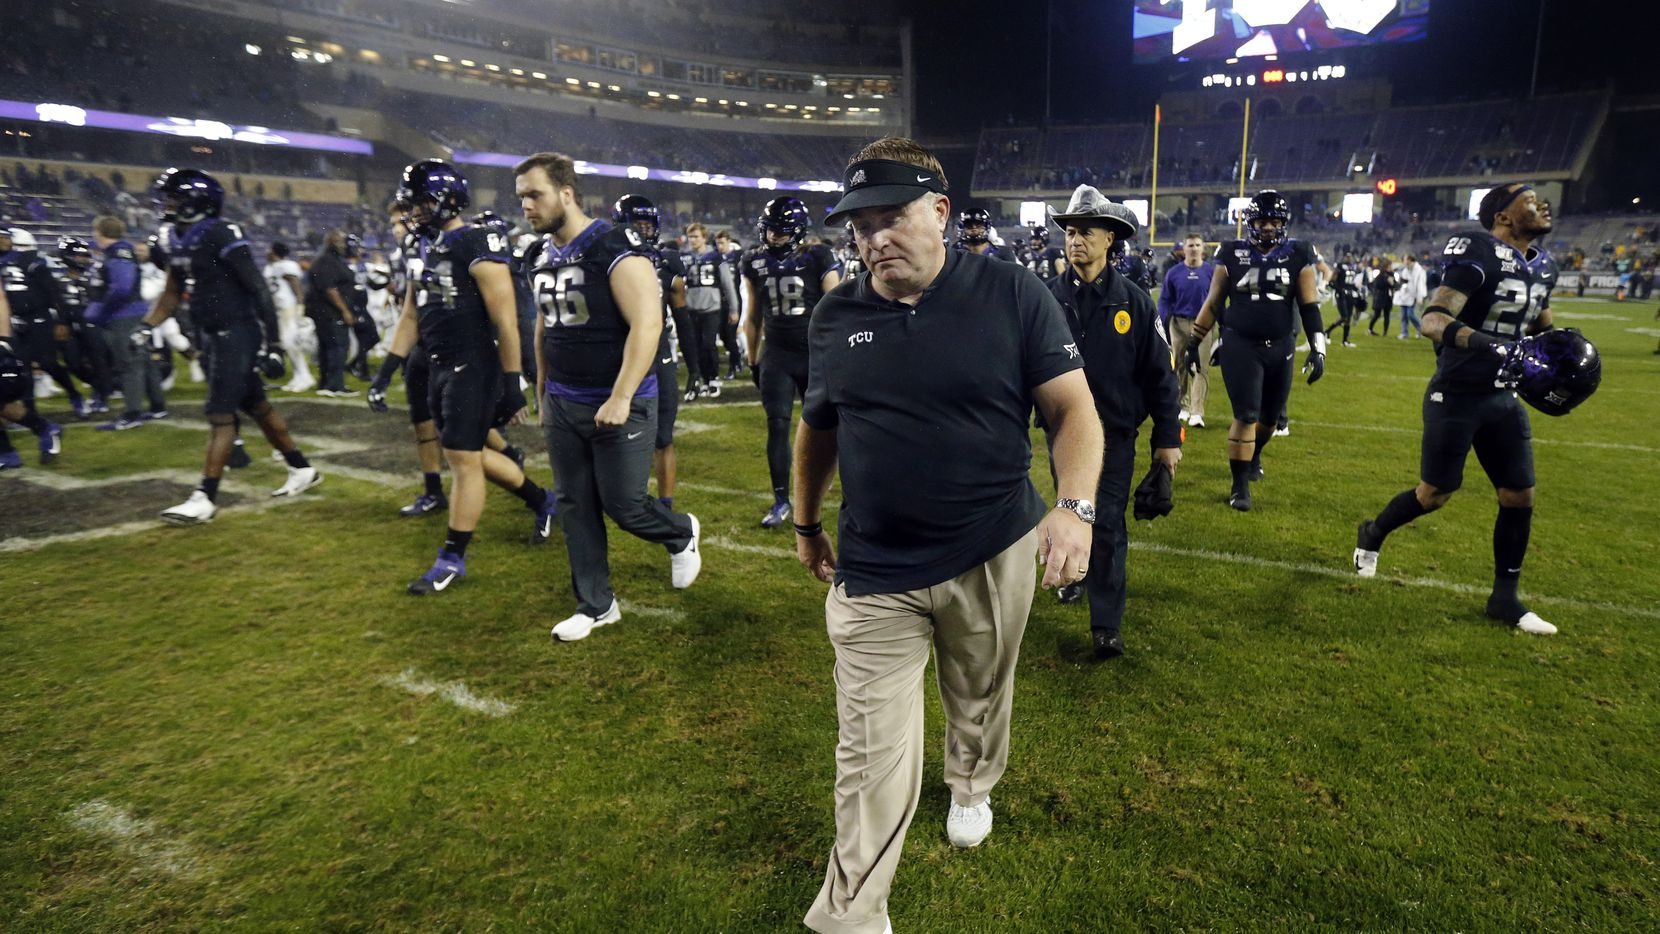 TCU Horned Frogs head coach Gary Patterson walks off the field after losing to the West Virginia Mountaineers at Amon G. Carter Stadium in Fort Worth, Friday, November 29, 2019. The Horned Frogs lost, 20-17.